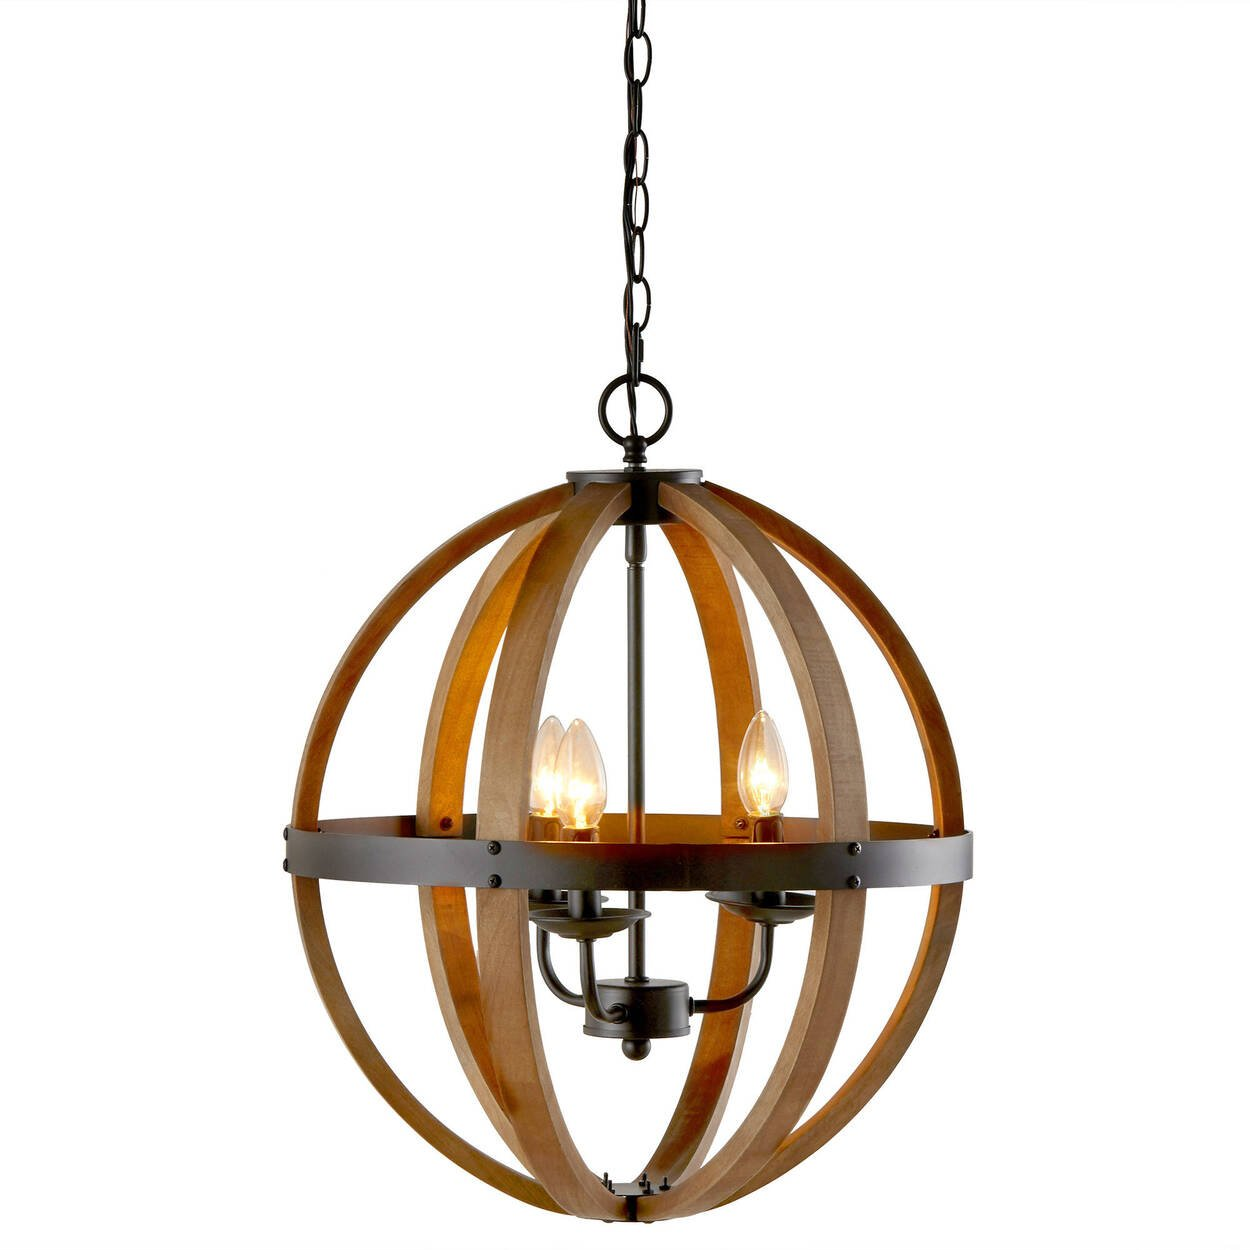 Wood Sphere Chandelier Ceiling Lamp